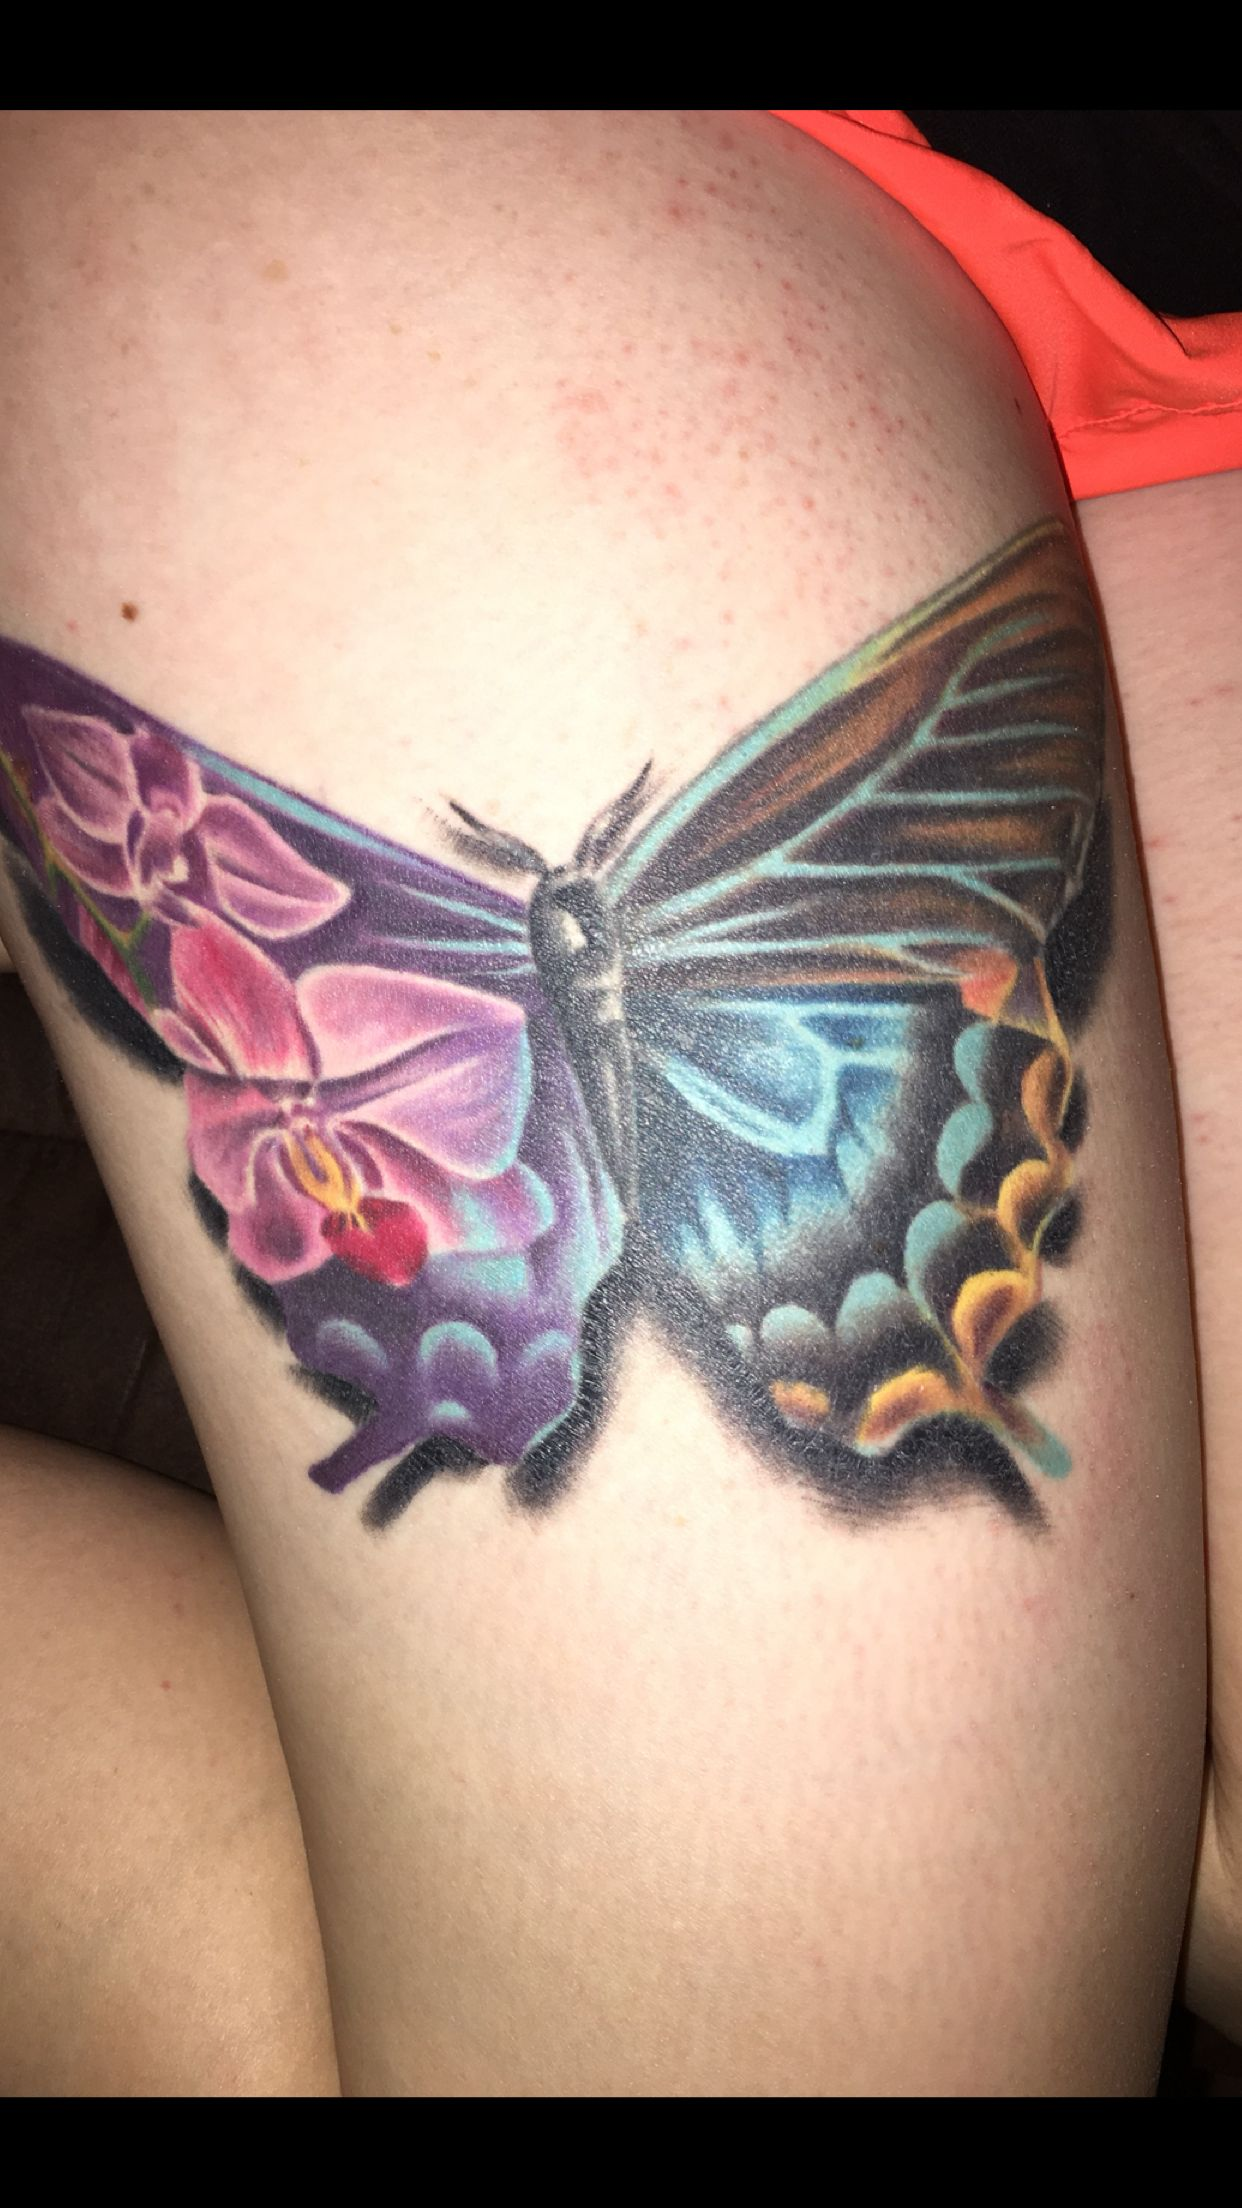 My finished tattoo done by christoph nels in fort myers